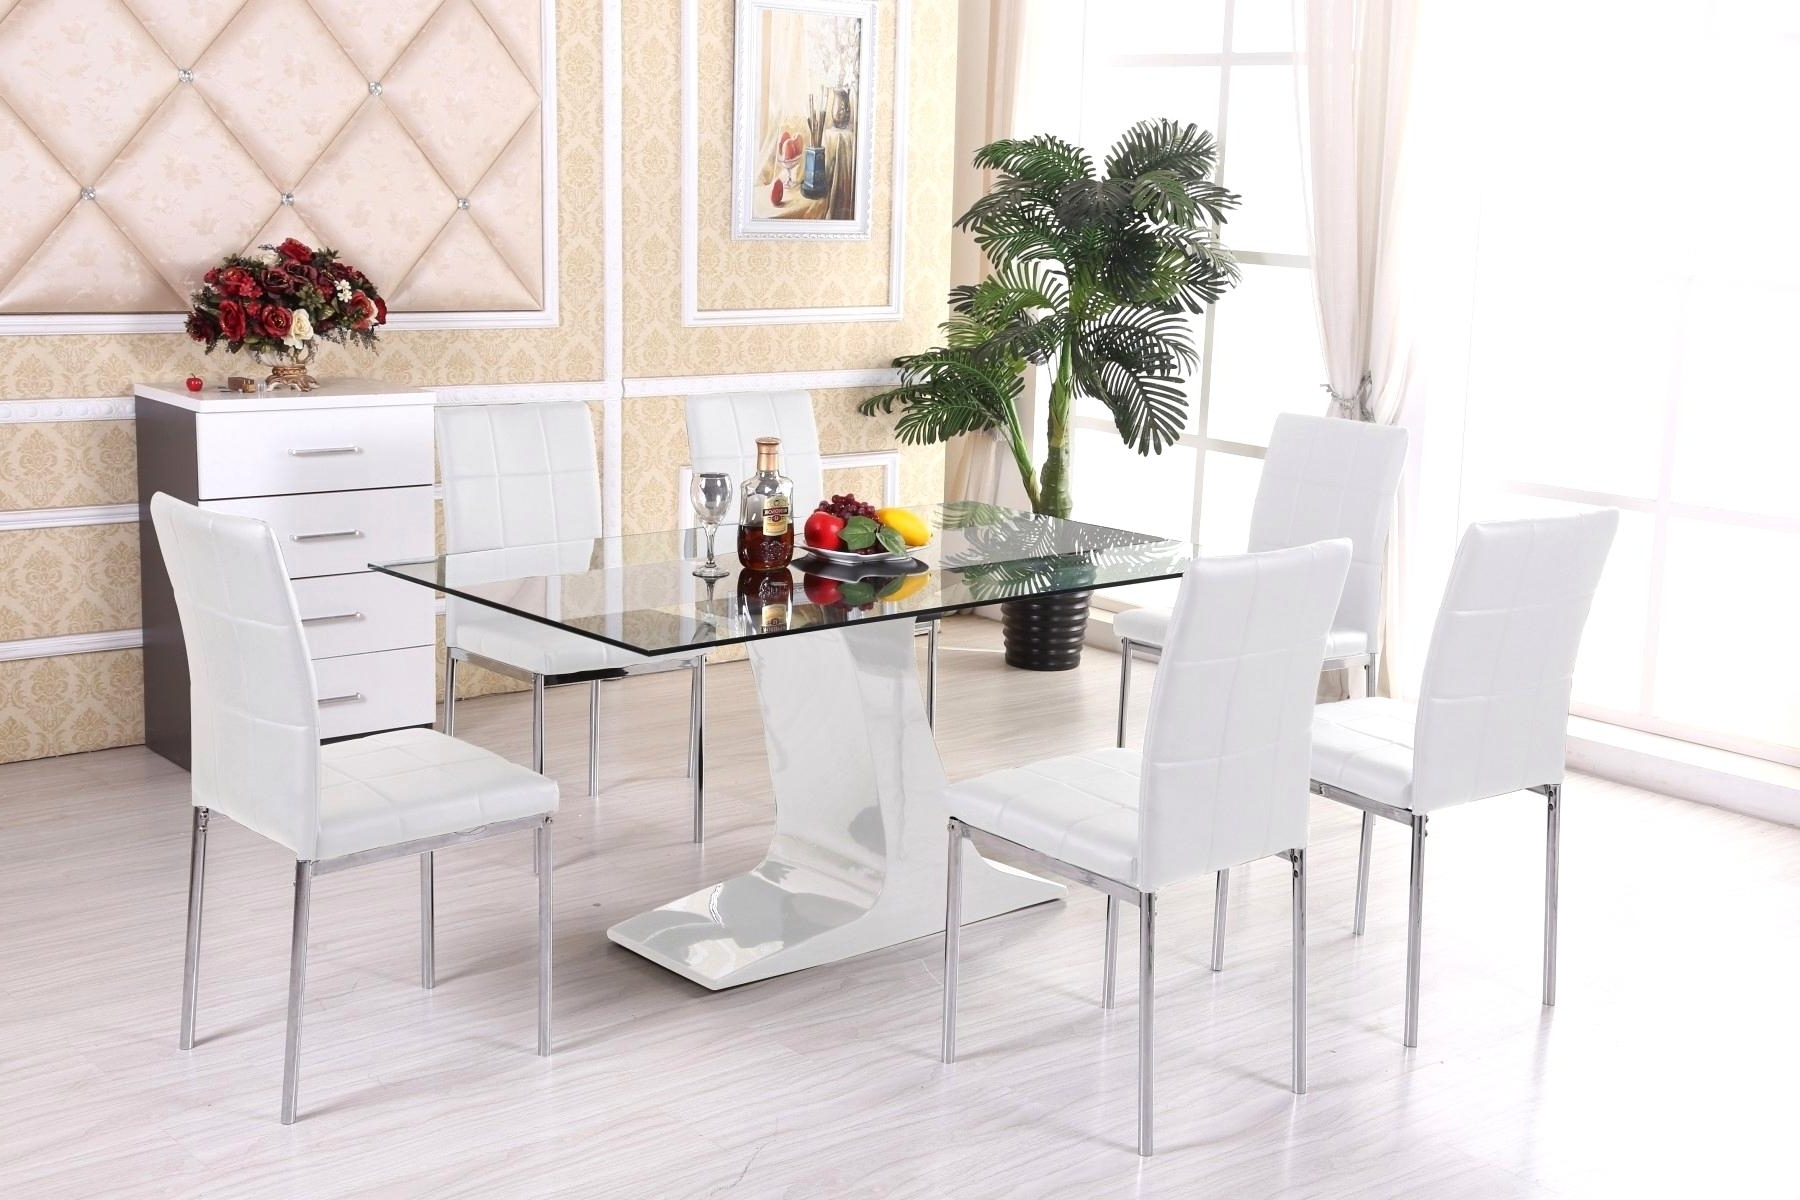 White Glass Dining Tables And Chairs Pertaining To Most Recent Marvelous Dining Room Sets White Glass Ining Table And Chairs Modern (View 18 of 25)